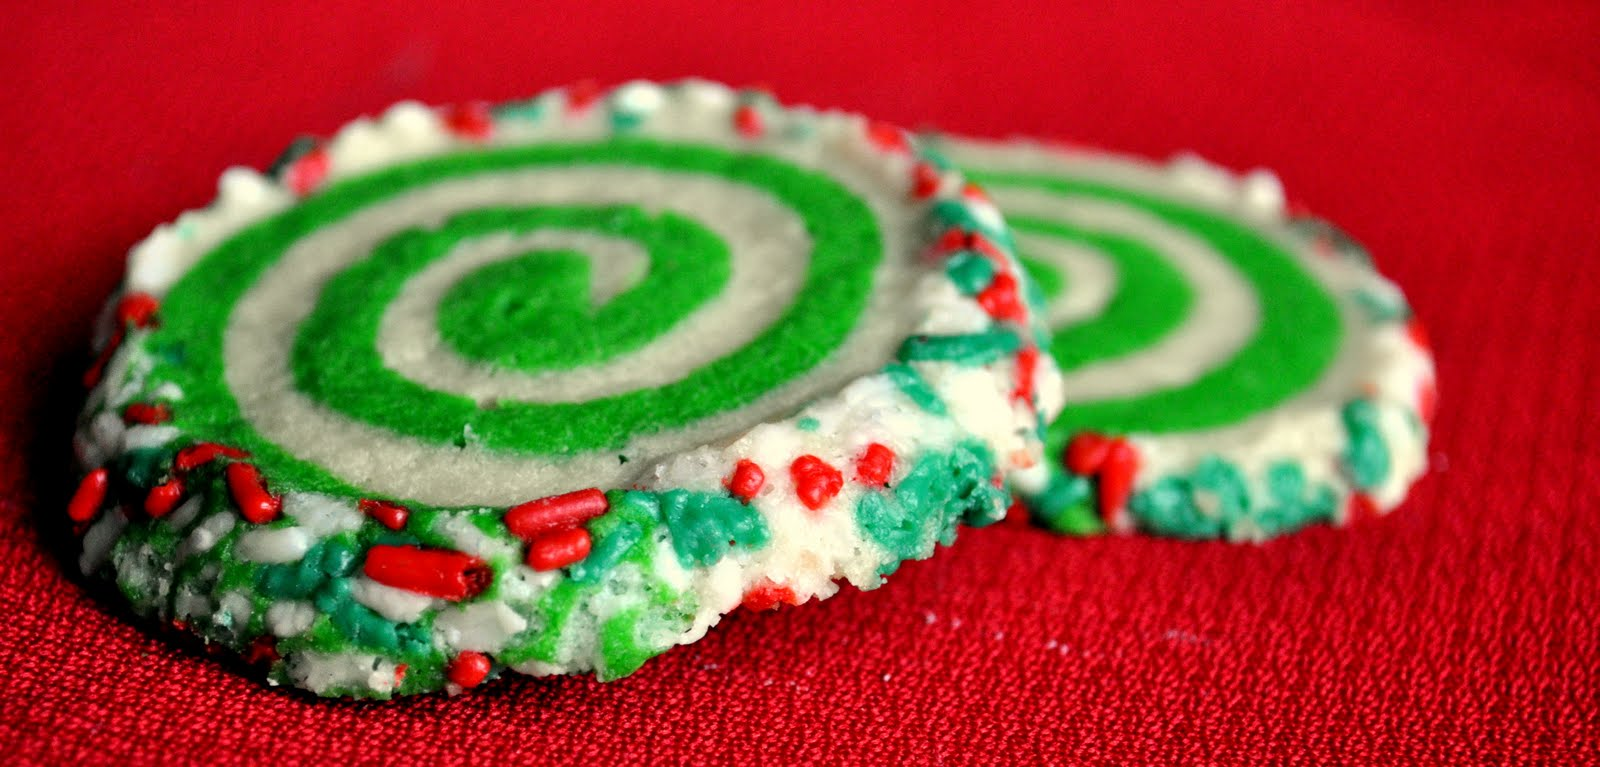 Our italian kitchen colorful swirl cookies colorful swirl cookies merry christmas forumfinder Image collections